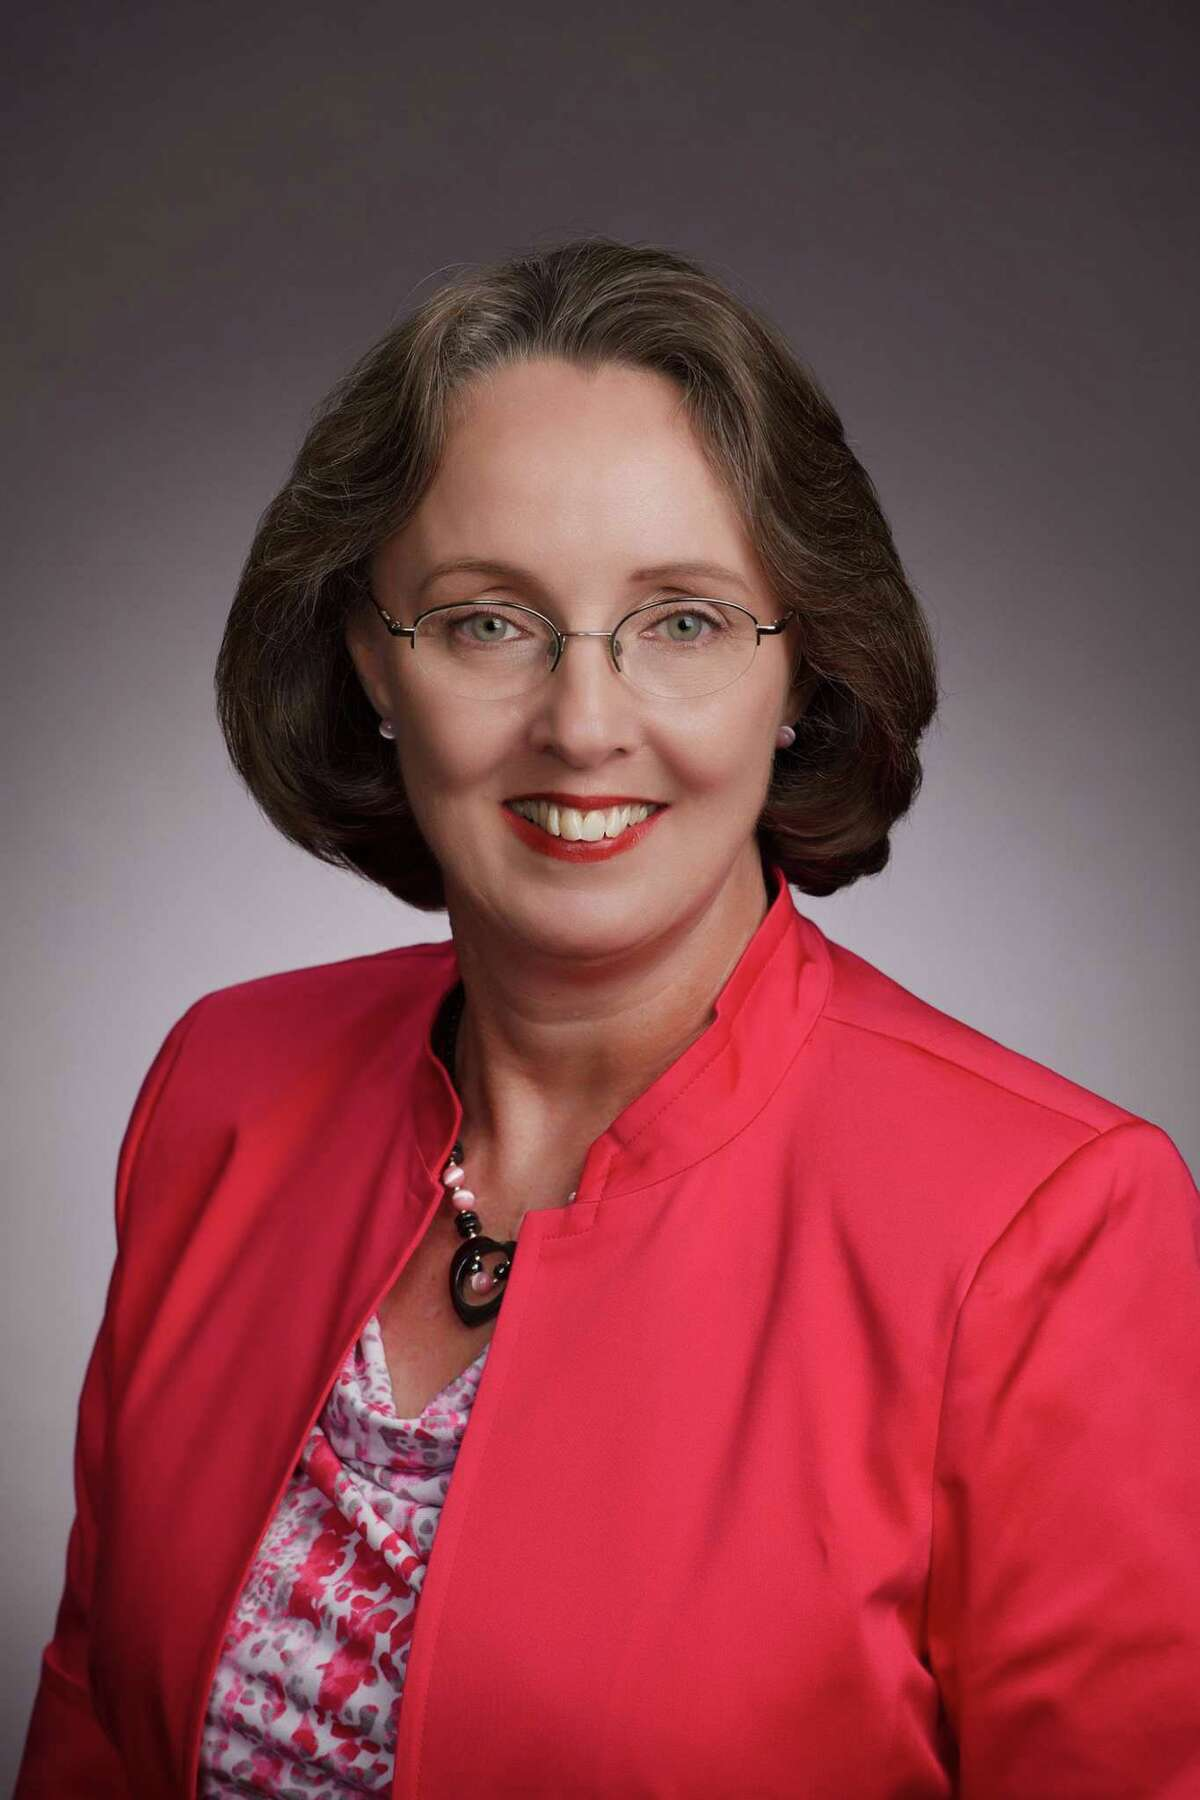 Lone Star College Trustee Linda Good is leaving the board as of July 1, 2021 because she and her husband are moving out of her district.